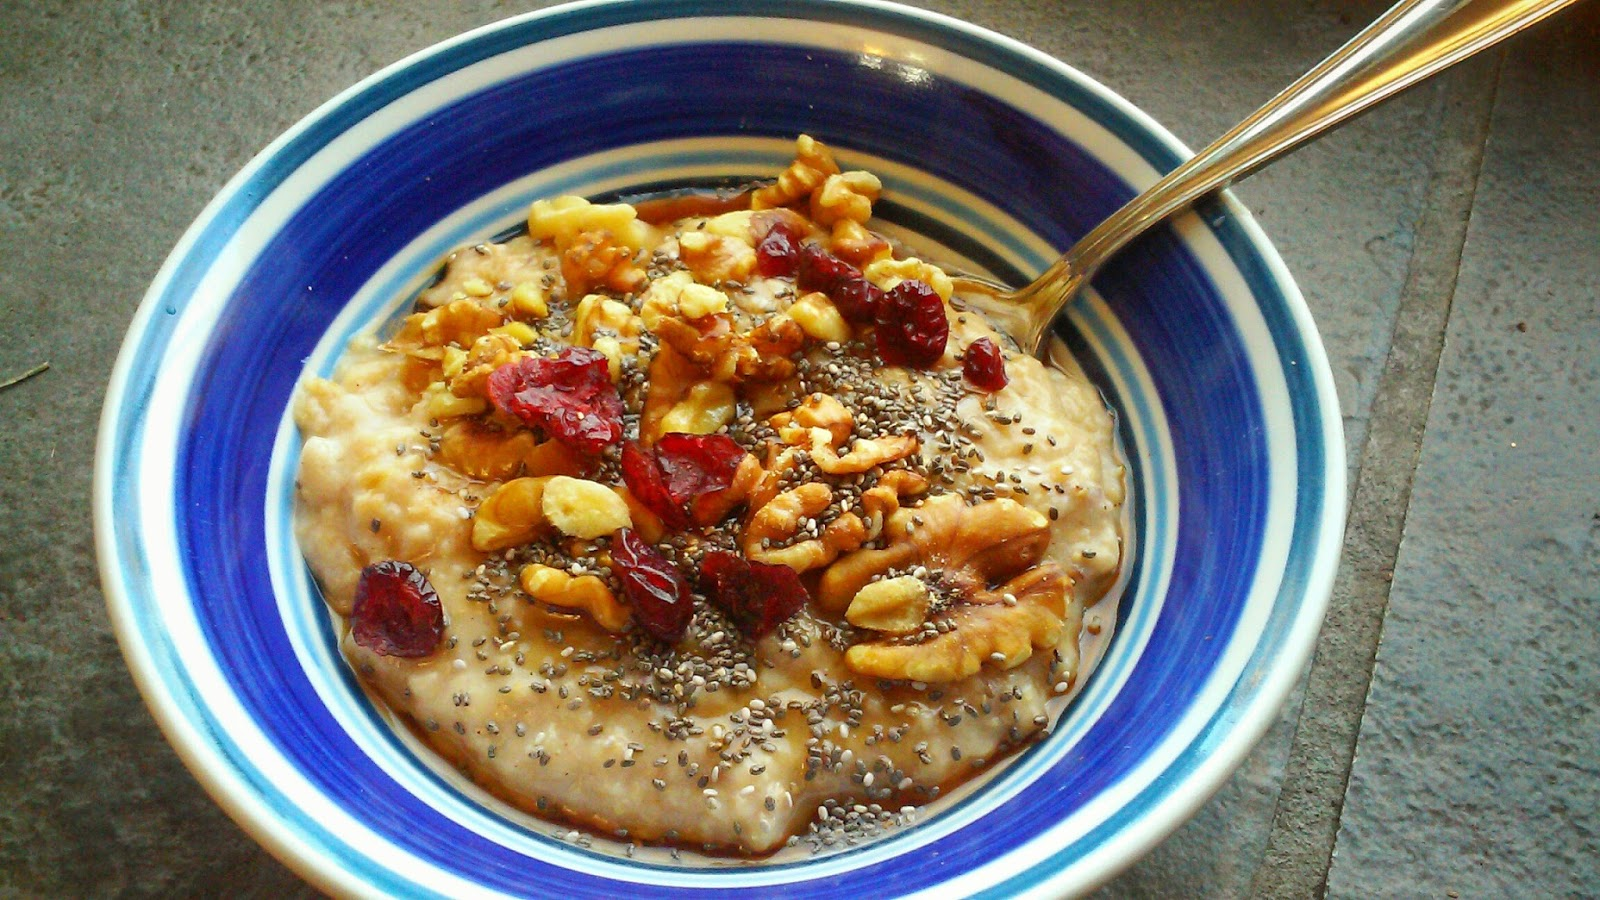 how to make oatmeal quickly in a crockpot